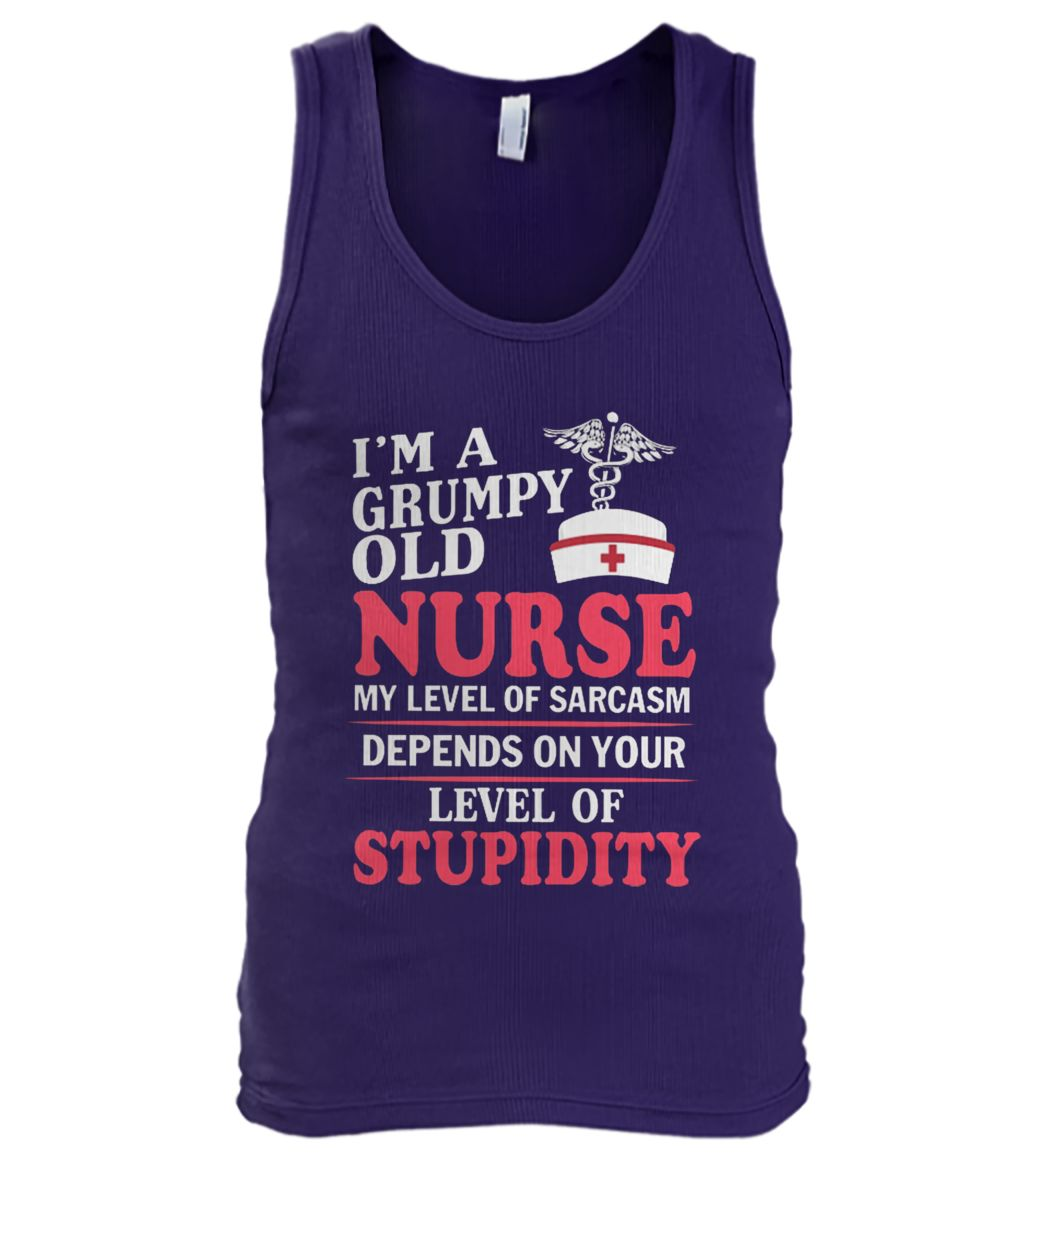 I'm a grumpy old nurse my level of sarcasm depends on your level of stupidity men's tank top